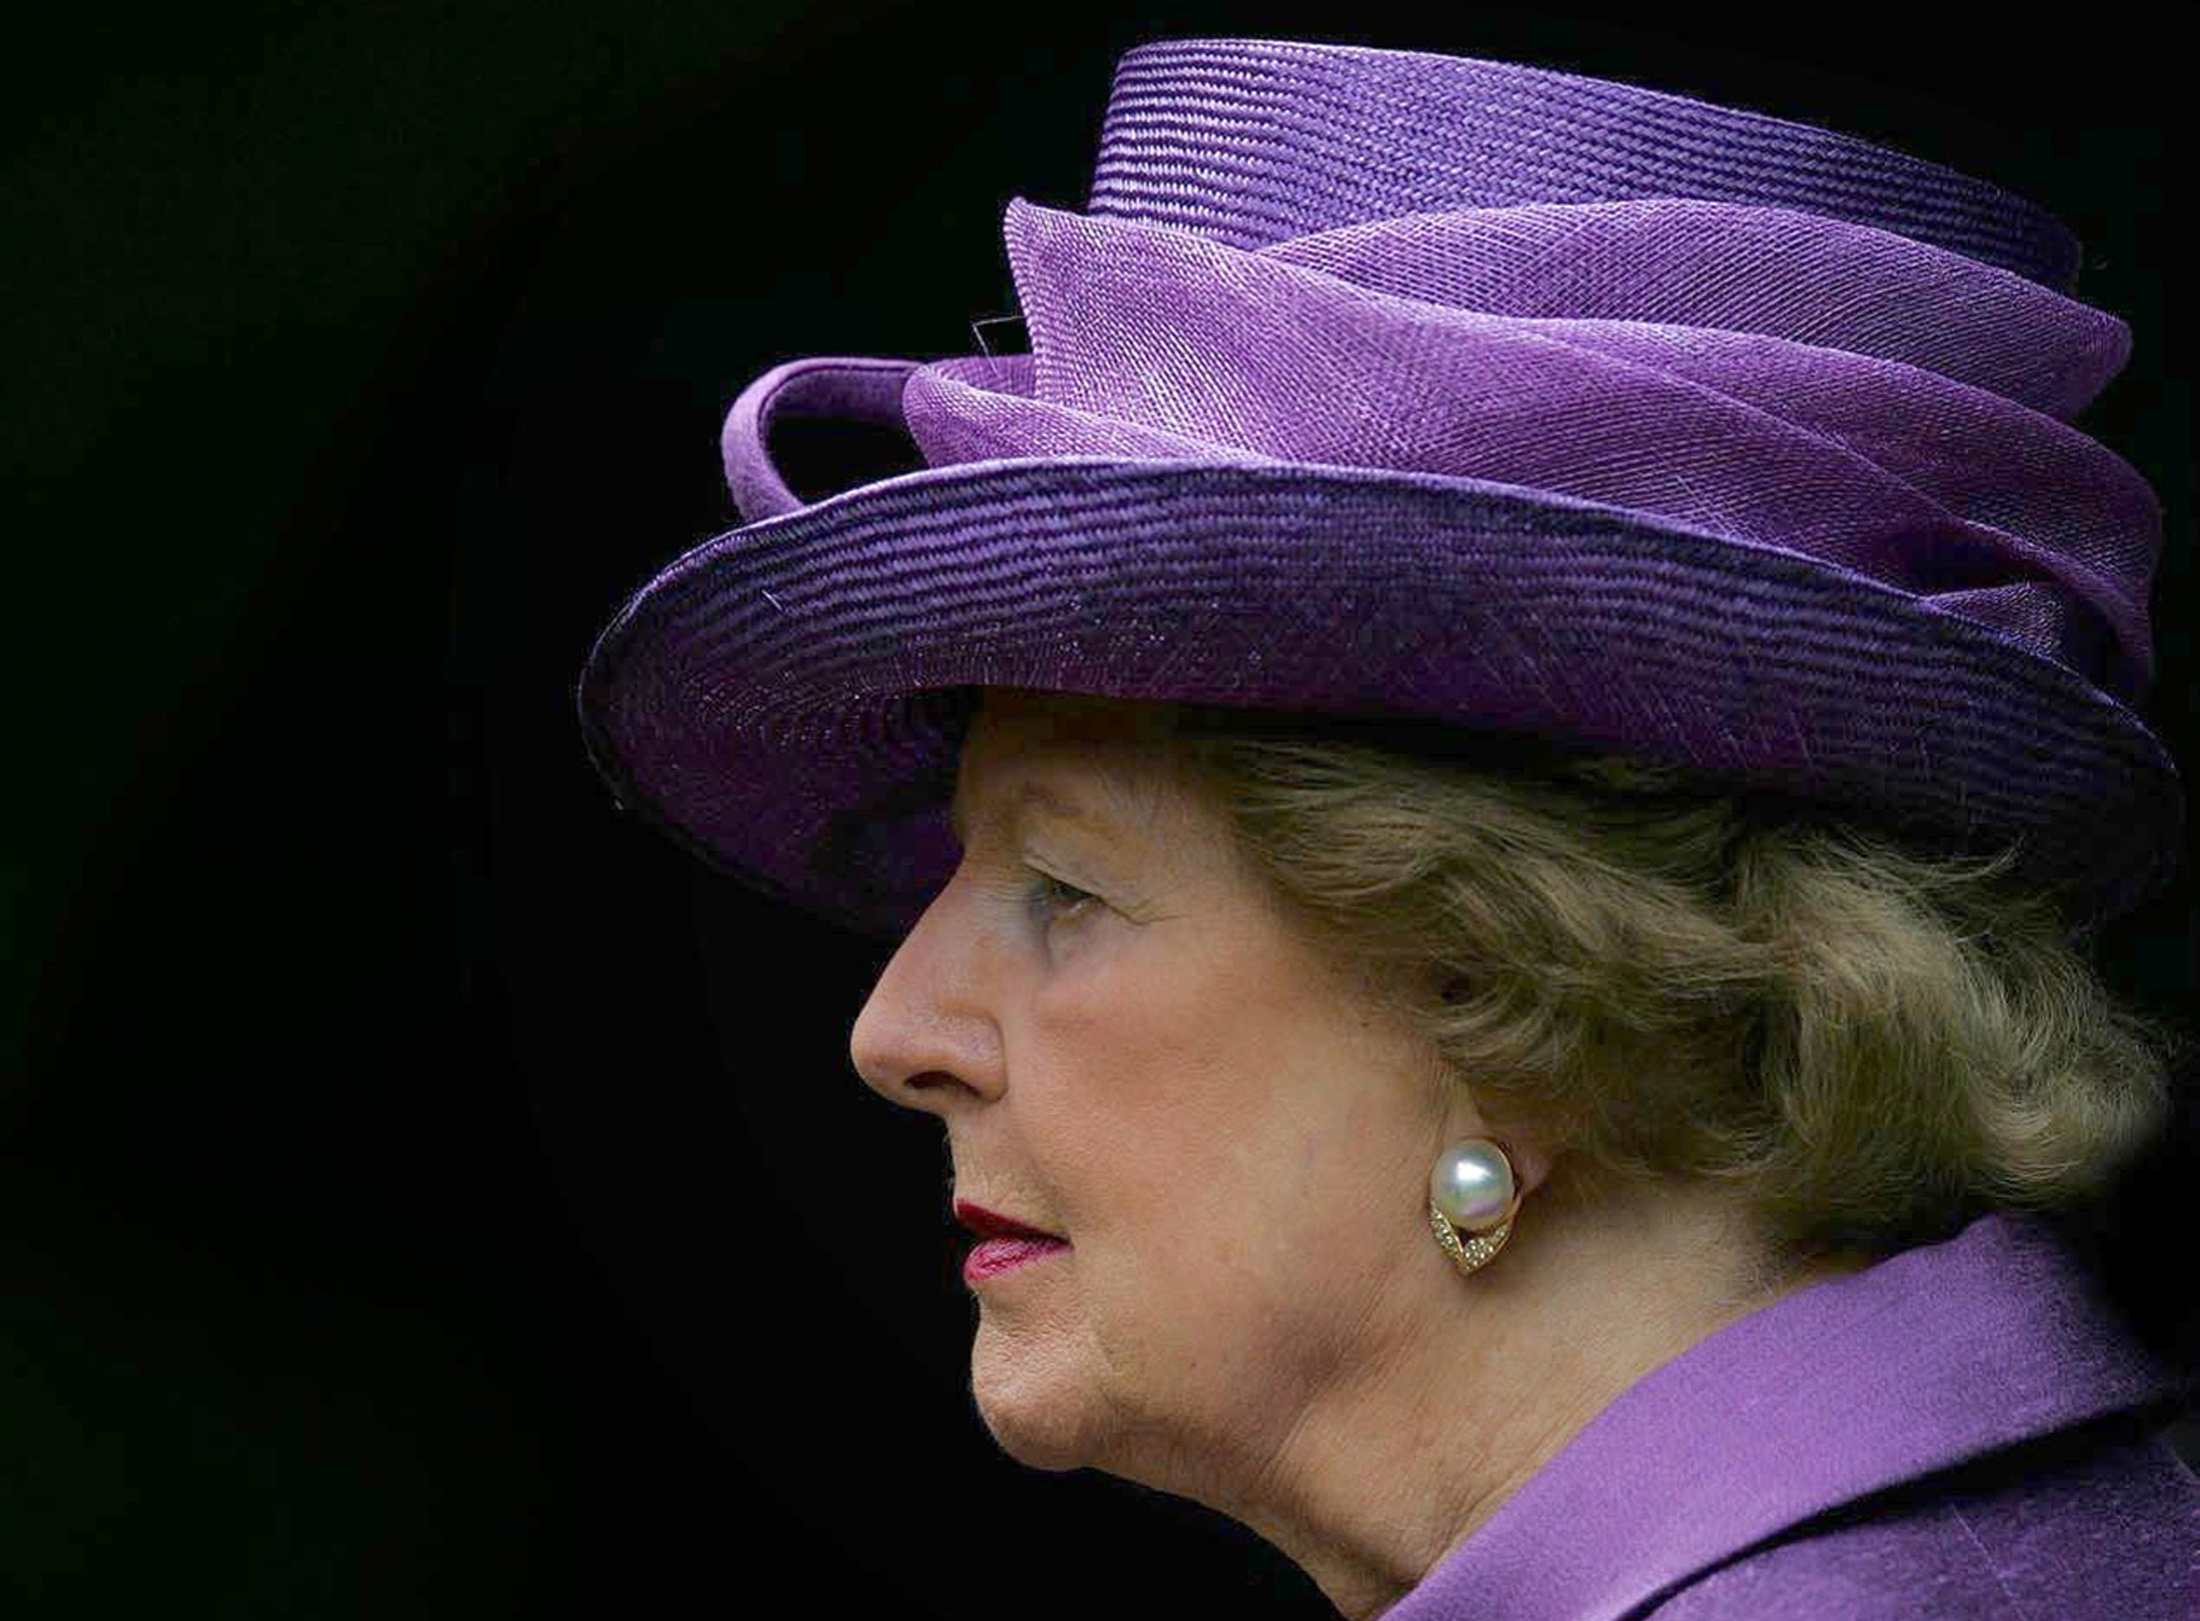 Britain's former Prime Minister Baroness Thatcher attends a service to commemorate the 25th anniversary of the liberation of the Falkland Islands from Argentine occupation by British forces, at the Falkand Islands Memorial Chapel at Pangbourne College, Berkshire, southern England in this June 14, 2007 file photo.